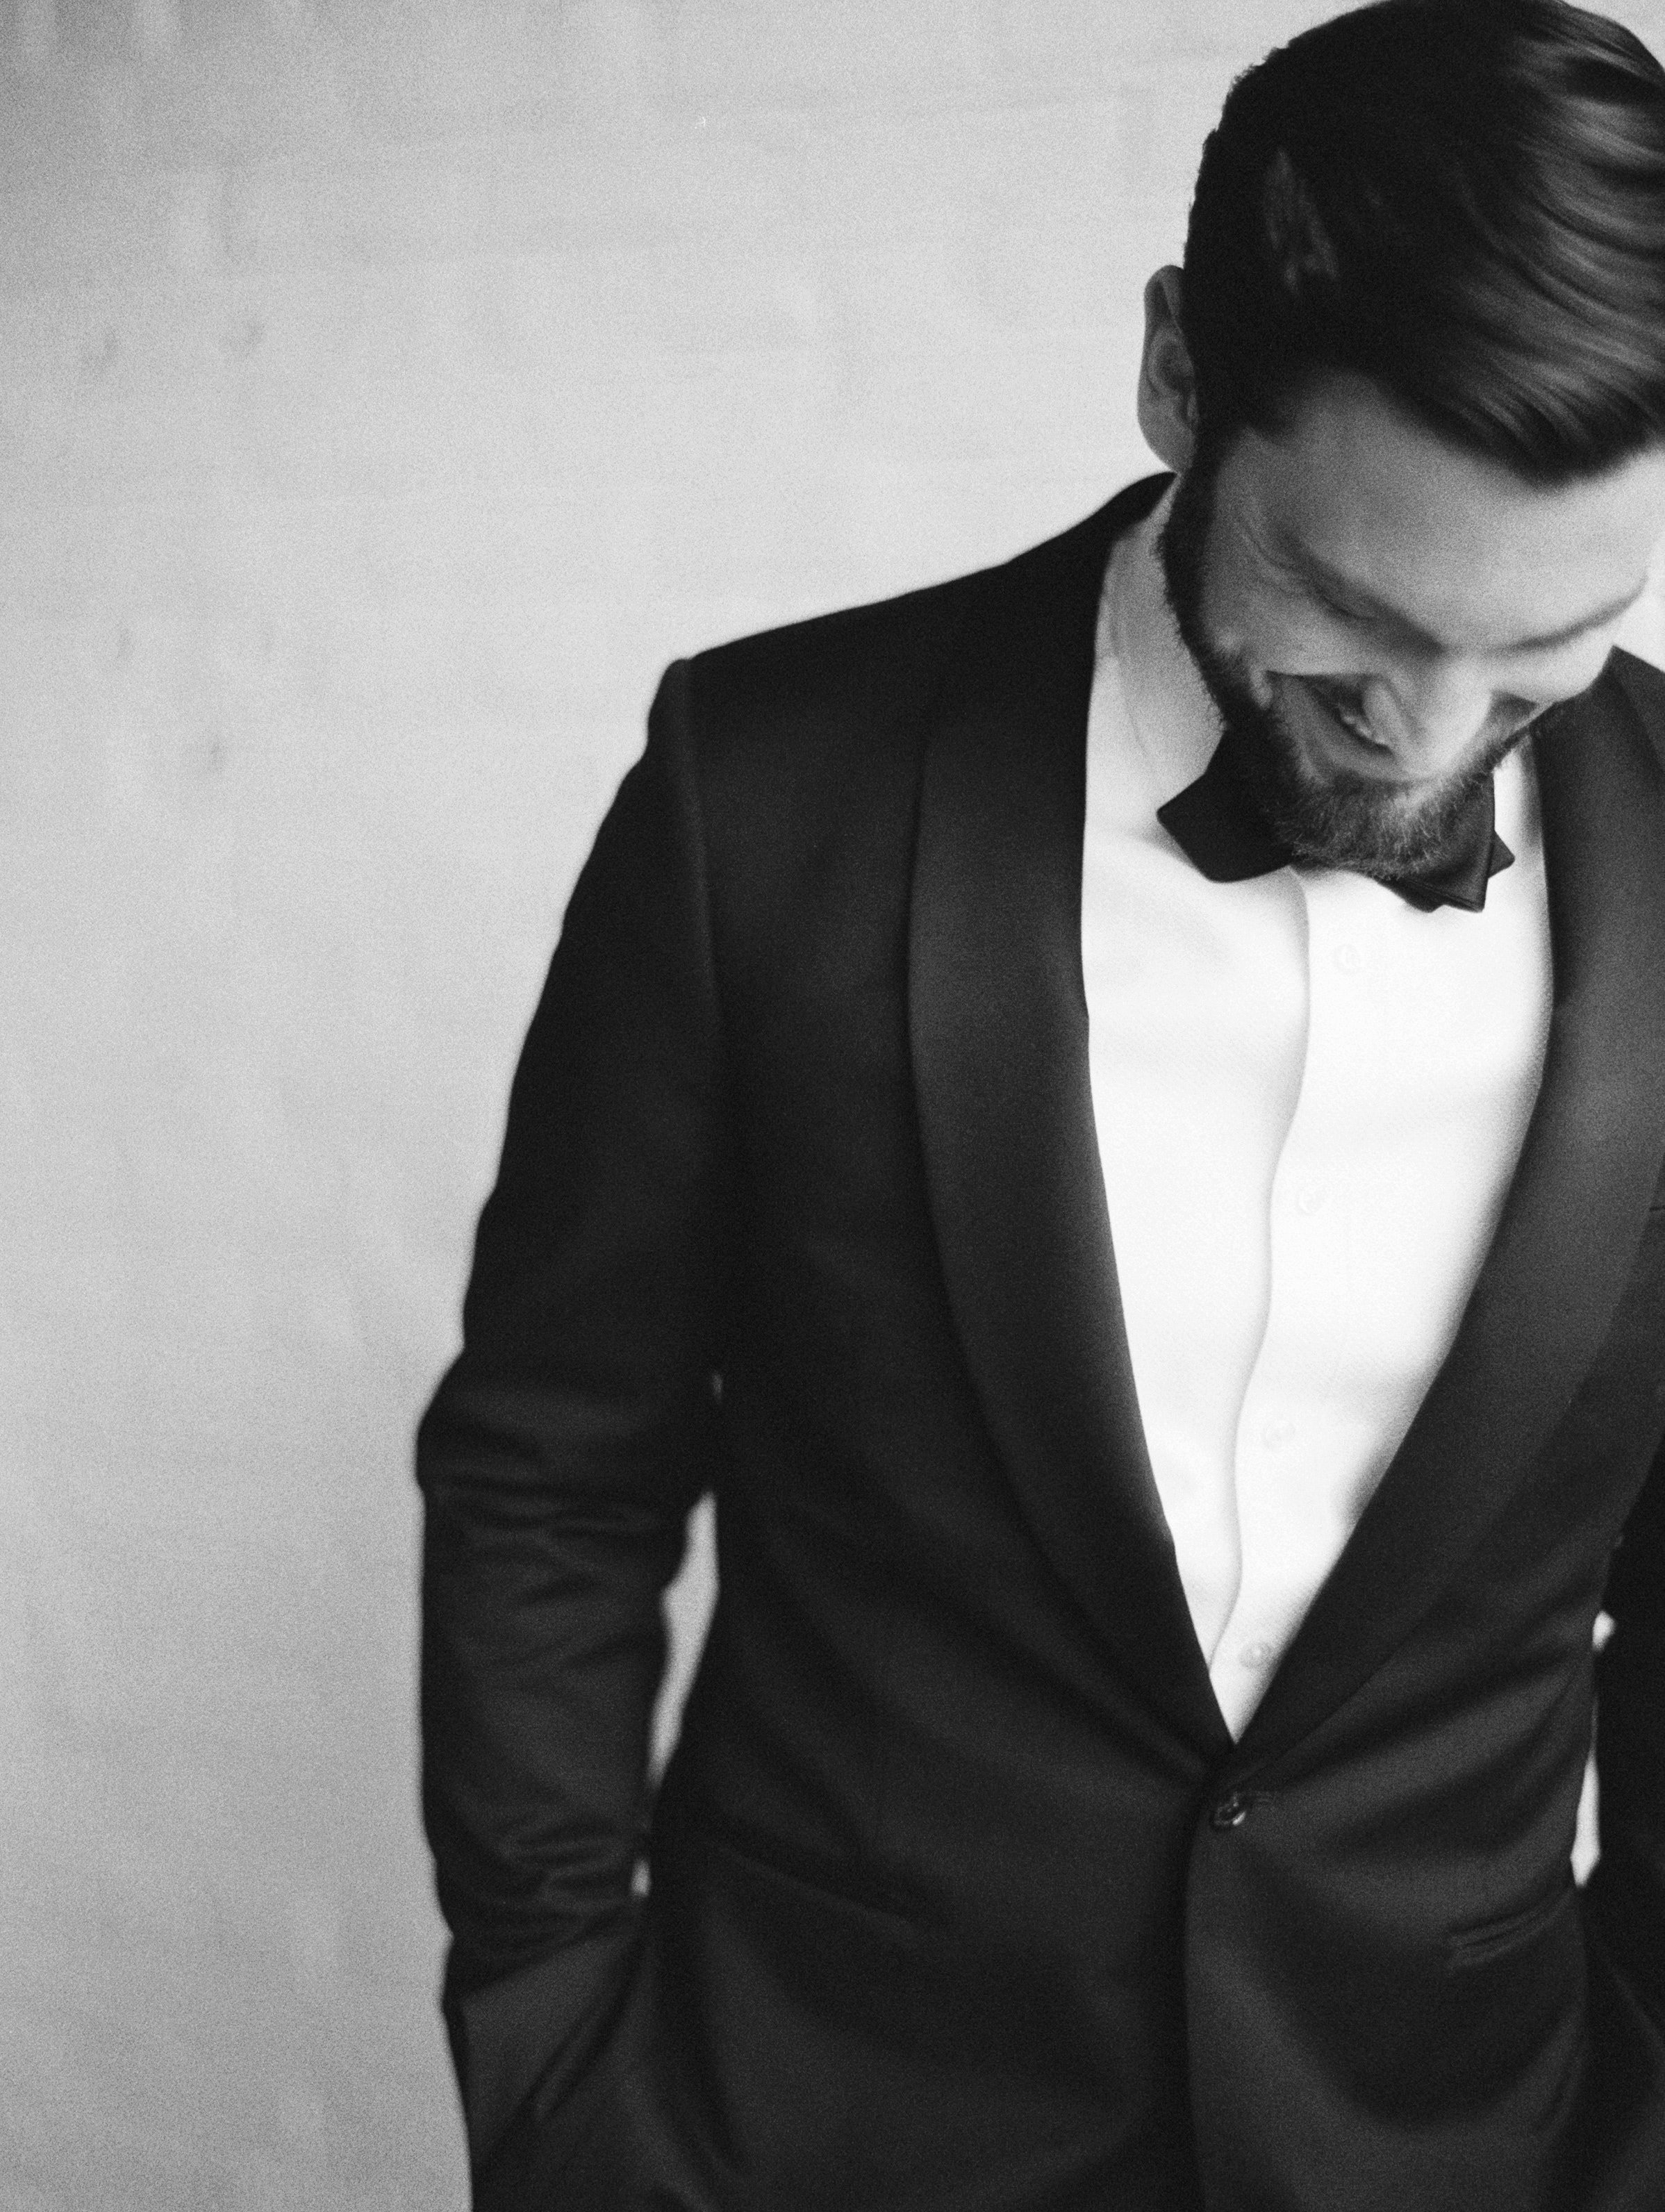 Essential Tips for the Groom on His Wedding Day, as Told by Five Recently-Married Men